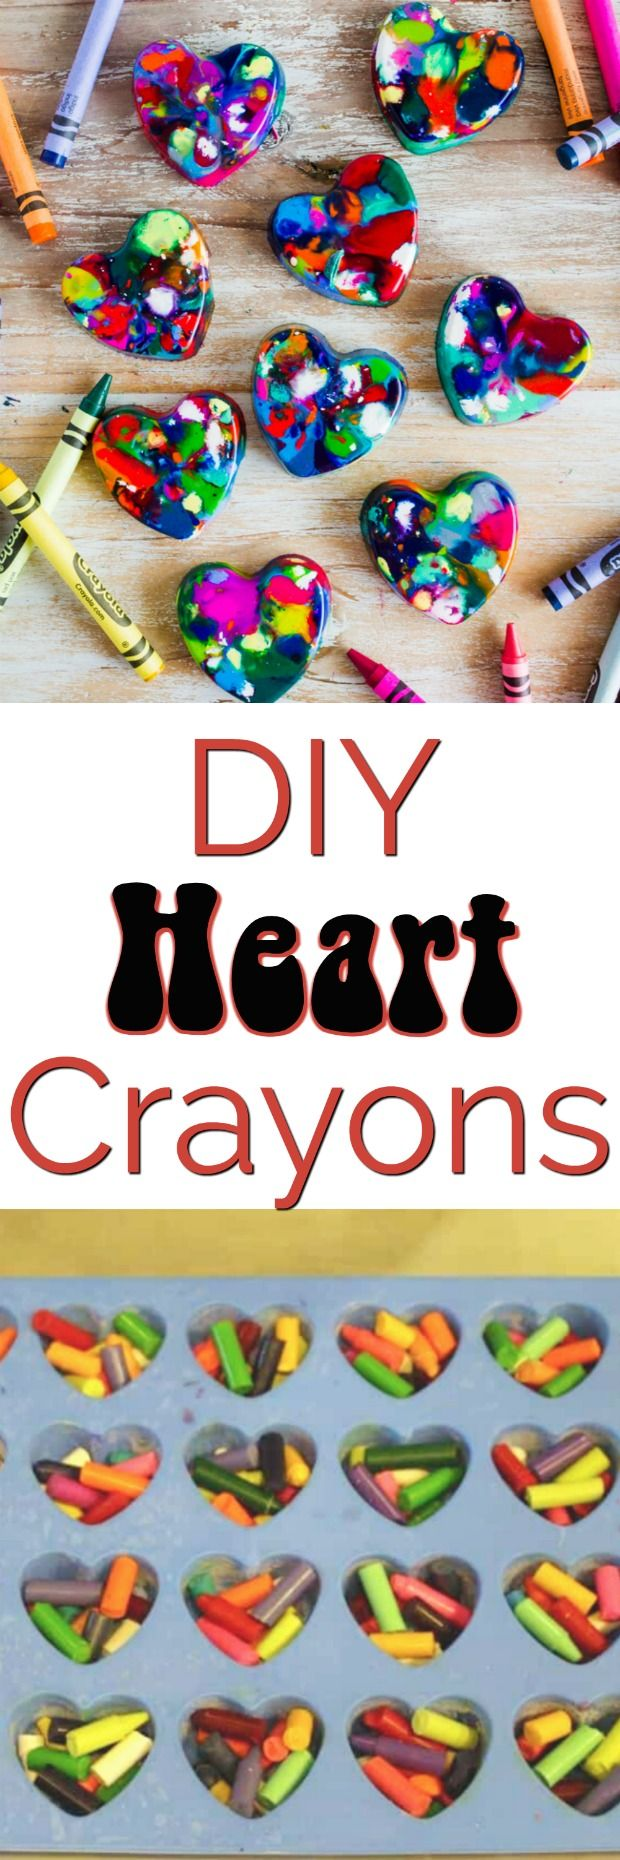 4cad1242cc6c169acb0d8064a4910120 - DIY Heart Crayons - the perfect homemade Valentine's Day project and gift to han...